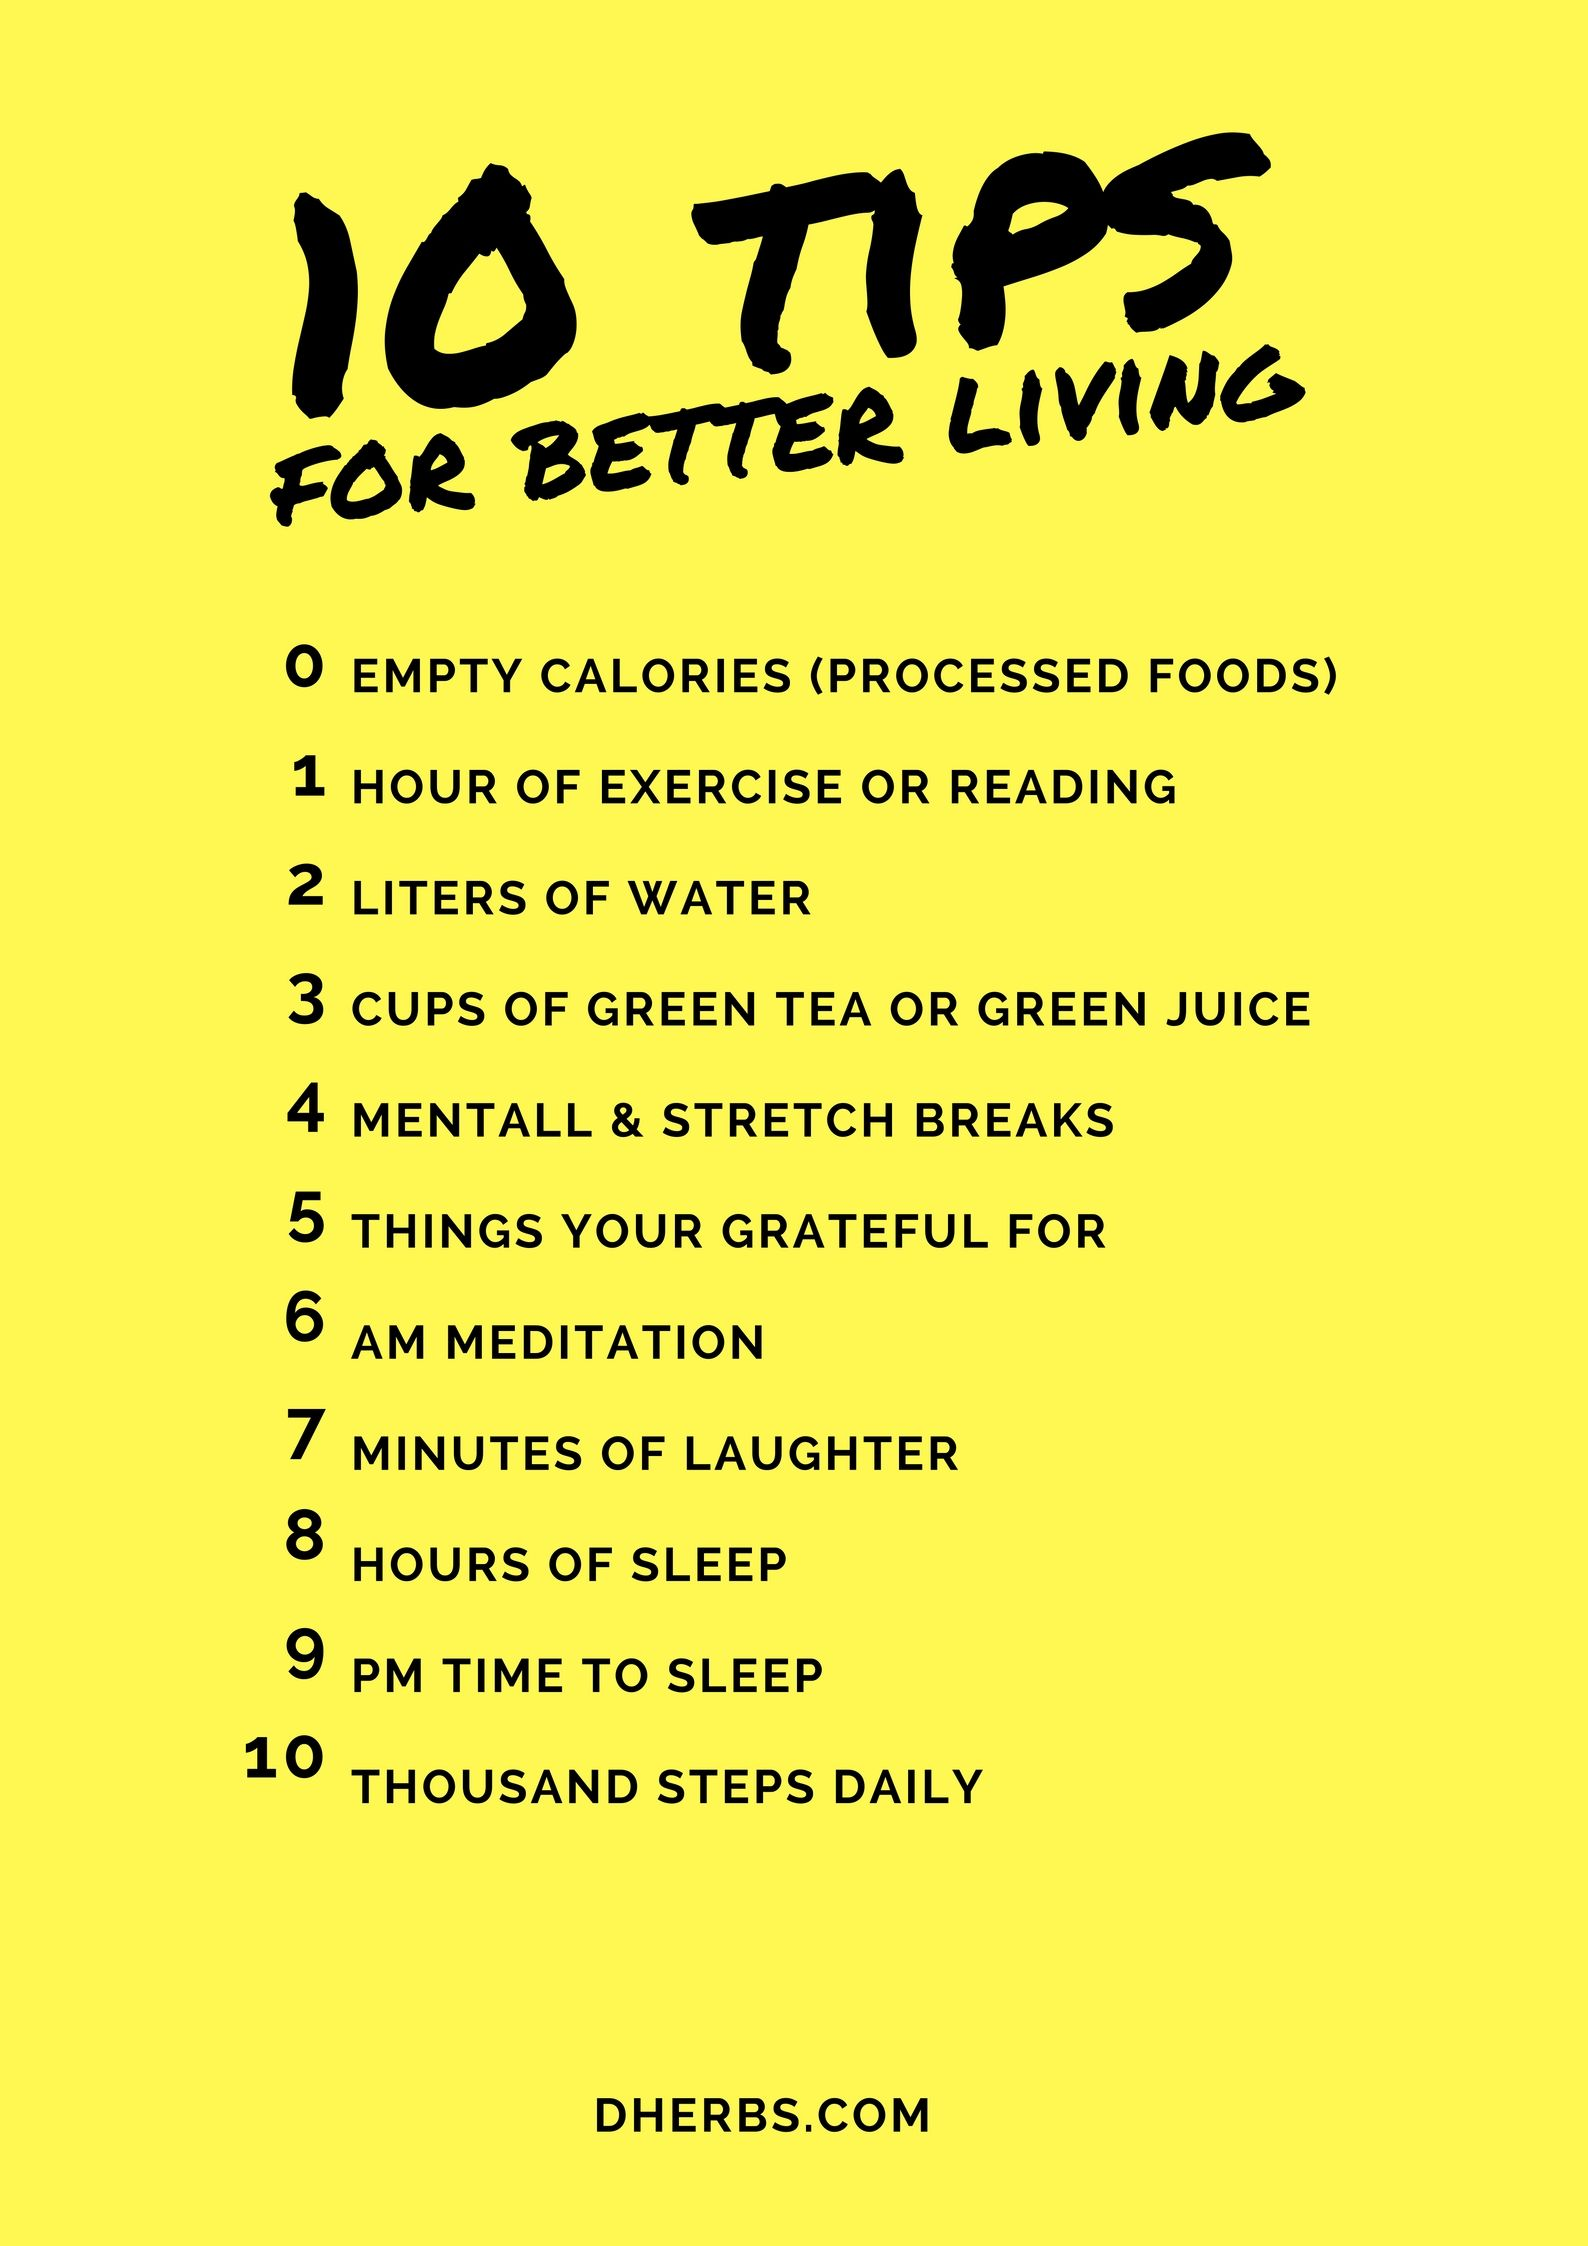 a guide to better living